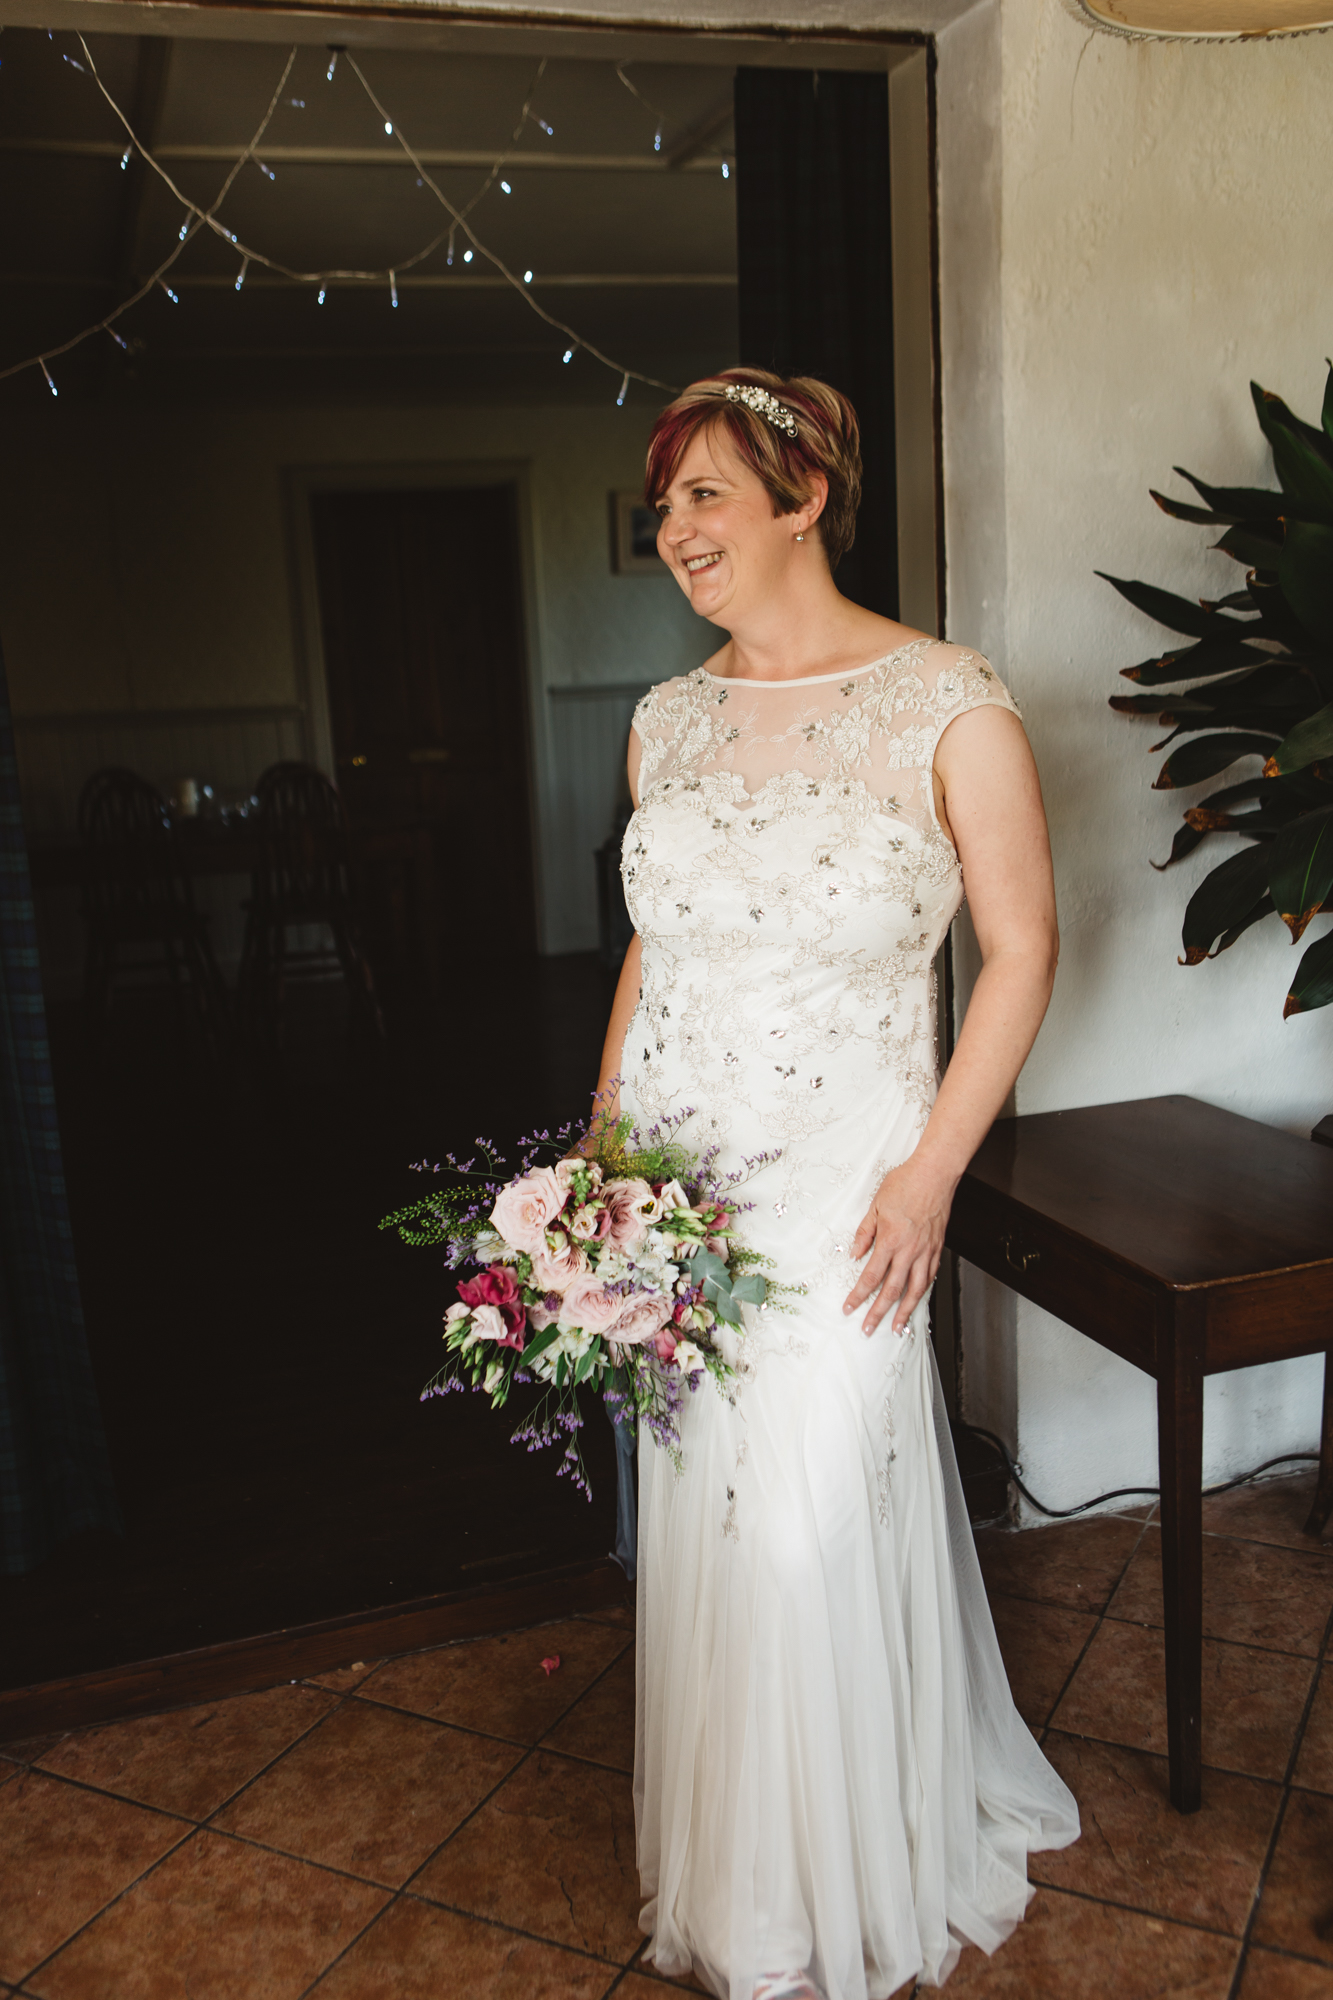 Beaming bride in wedding dress short pink hair holding bouquet